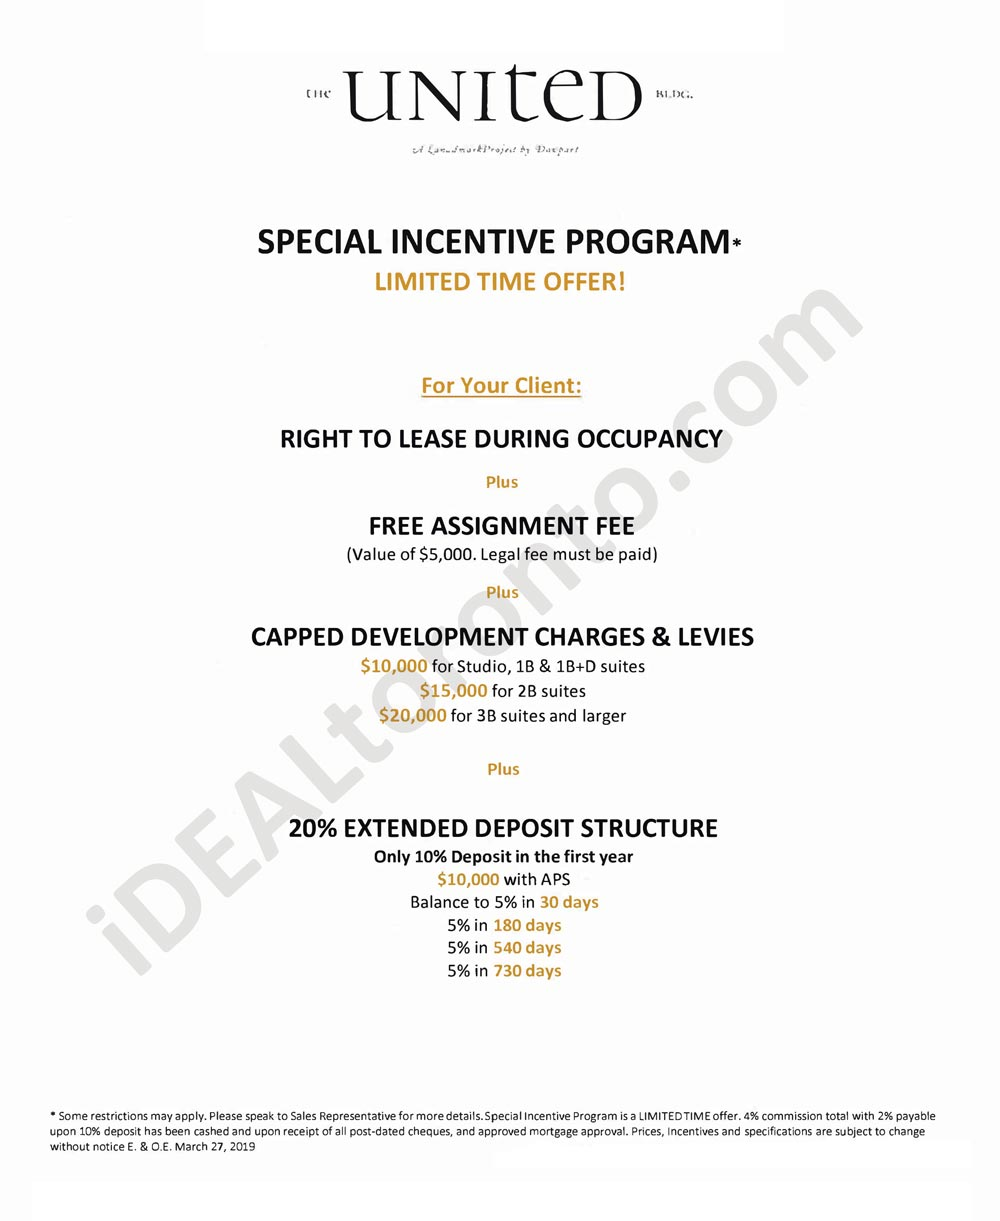 The United Bldg-Special-Incentive-Clients